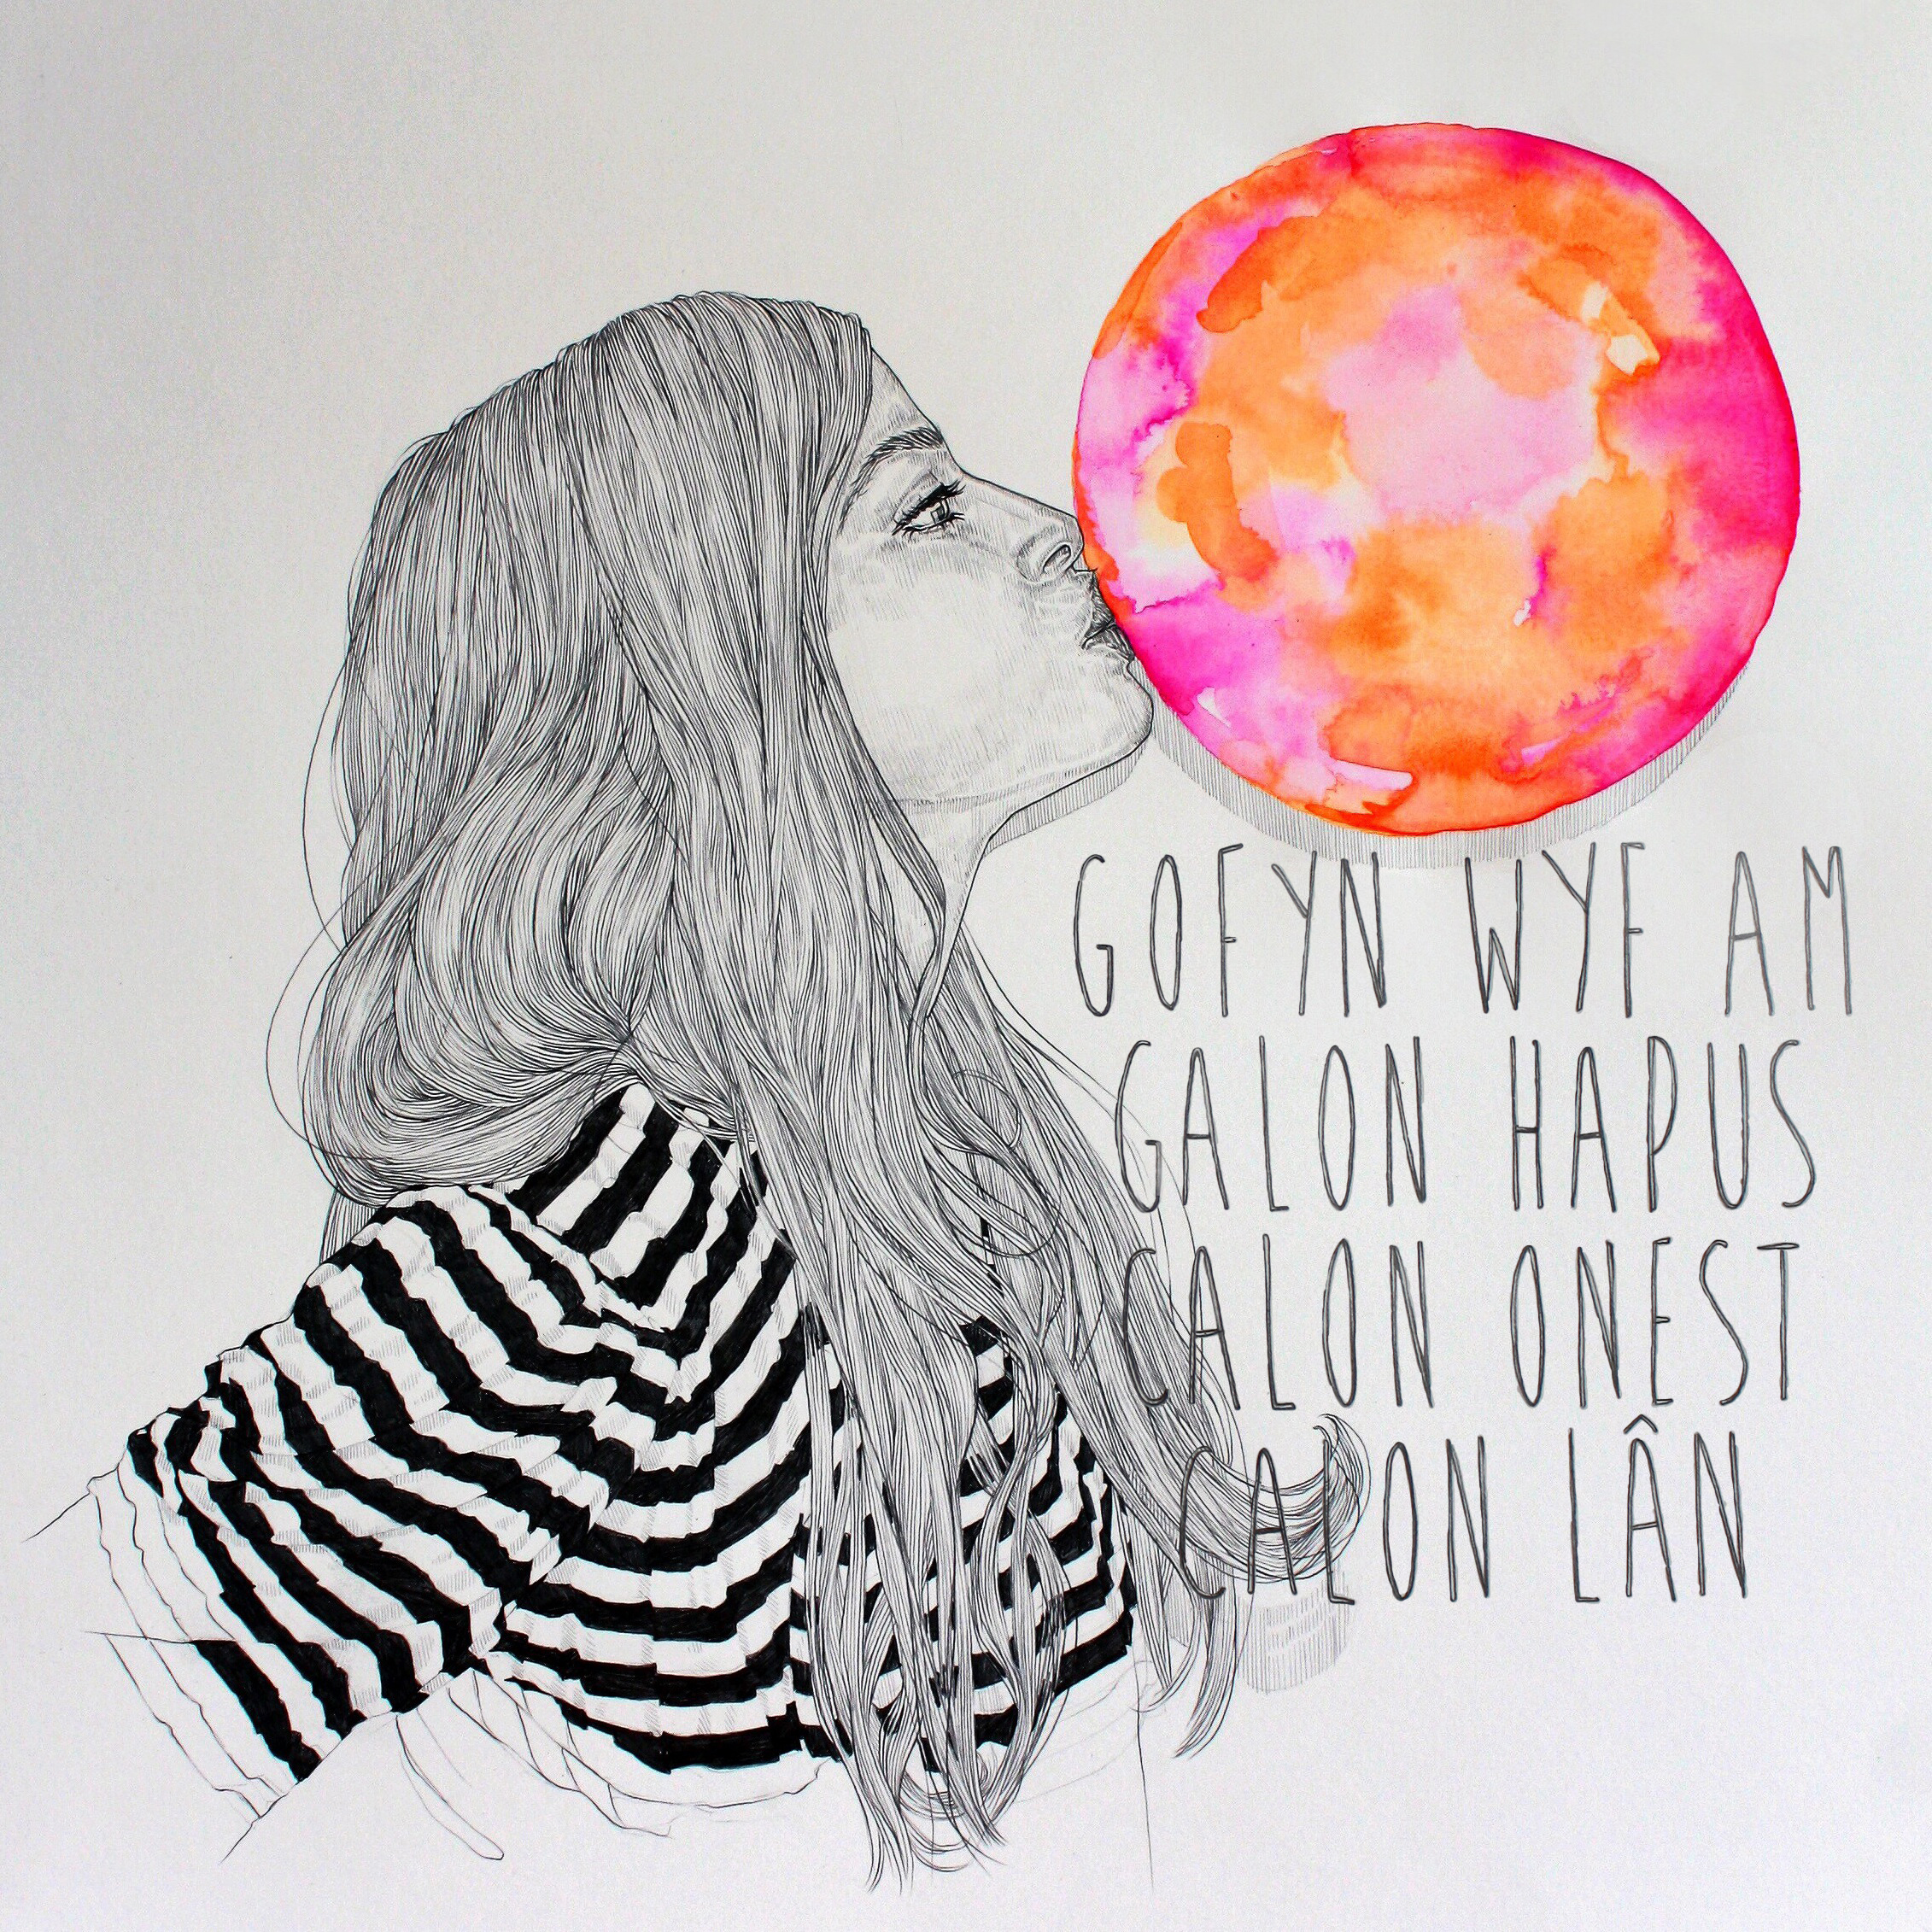 GOFYN WYF AM GALON HAPUS, CALON ONEST, CALON LAN / I ASK FOR A HAPPY HEART, AN HONEST HEART, A PURE HEART